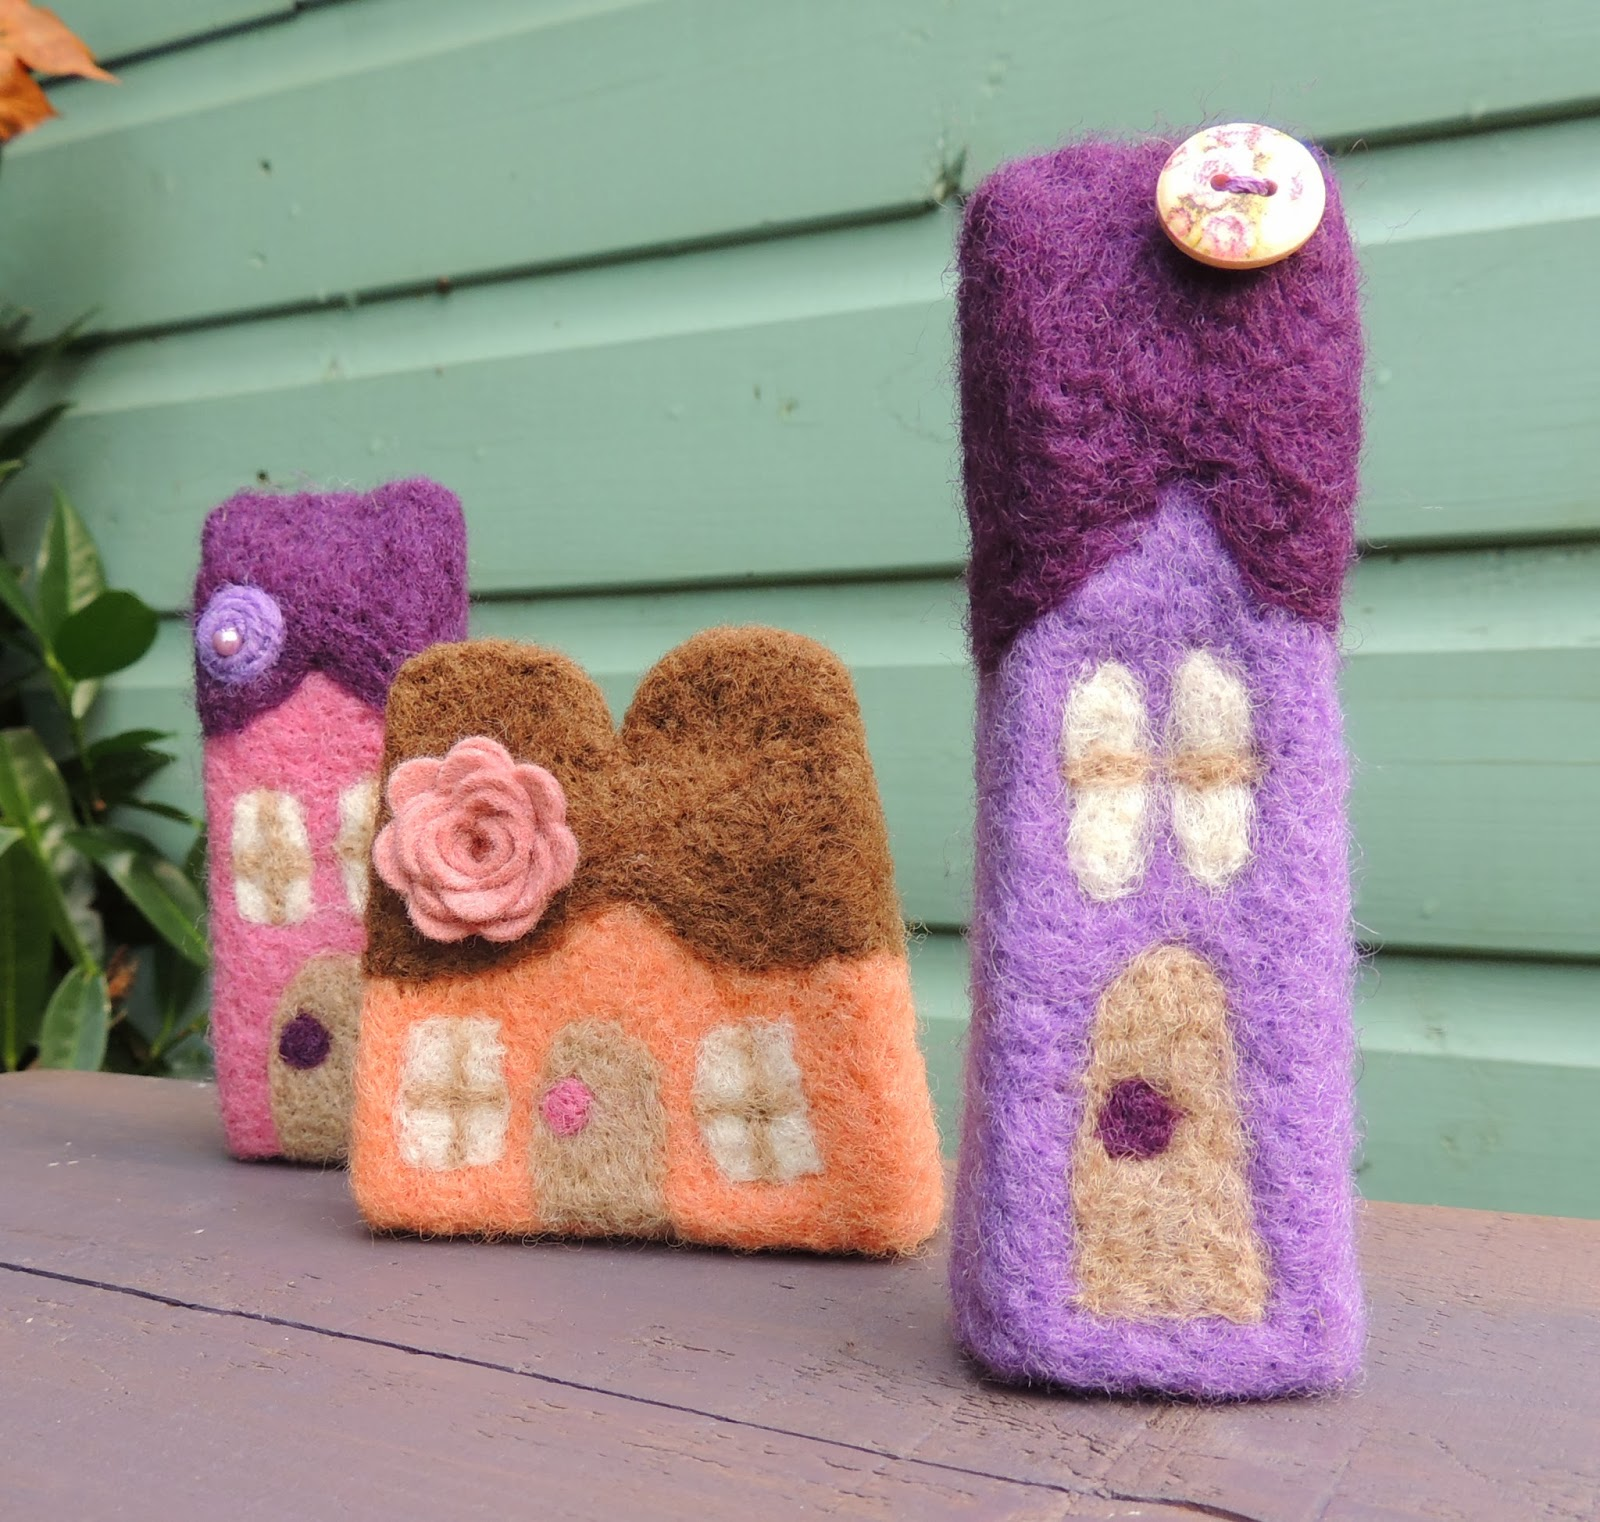 http://www.tigerlilymakes.co.uk/catalogue/4581823965/Needle-Felted-Cottage-Collection/7270887